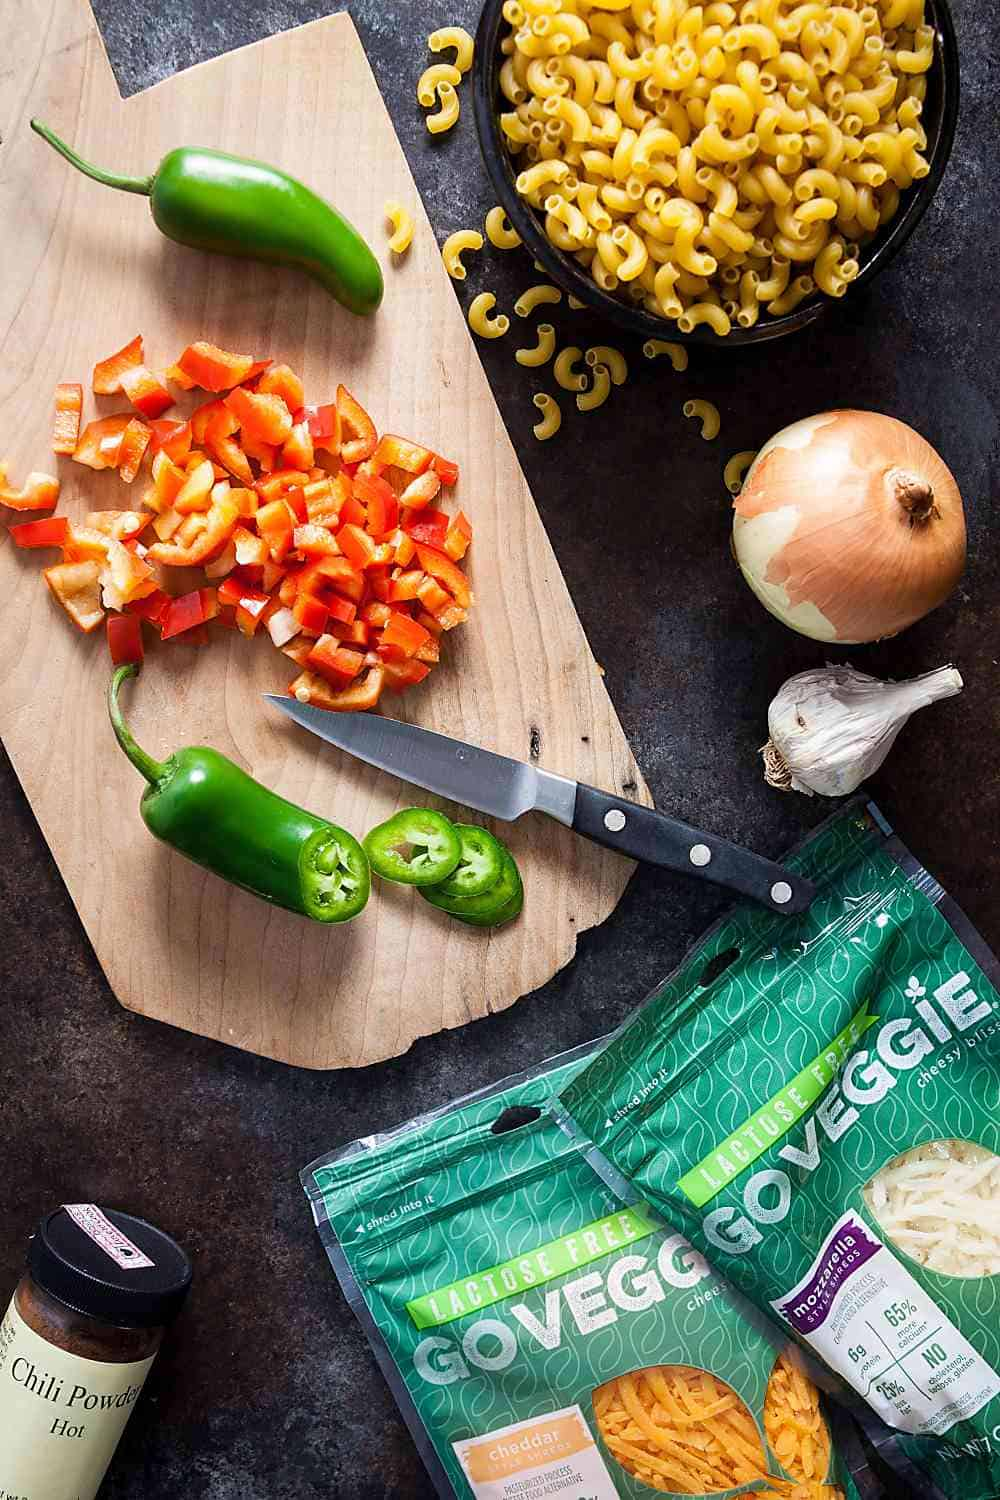 ingredients for vegetarian chili mac with go veggie cheese